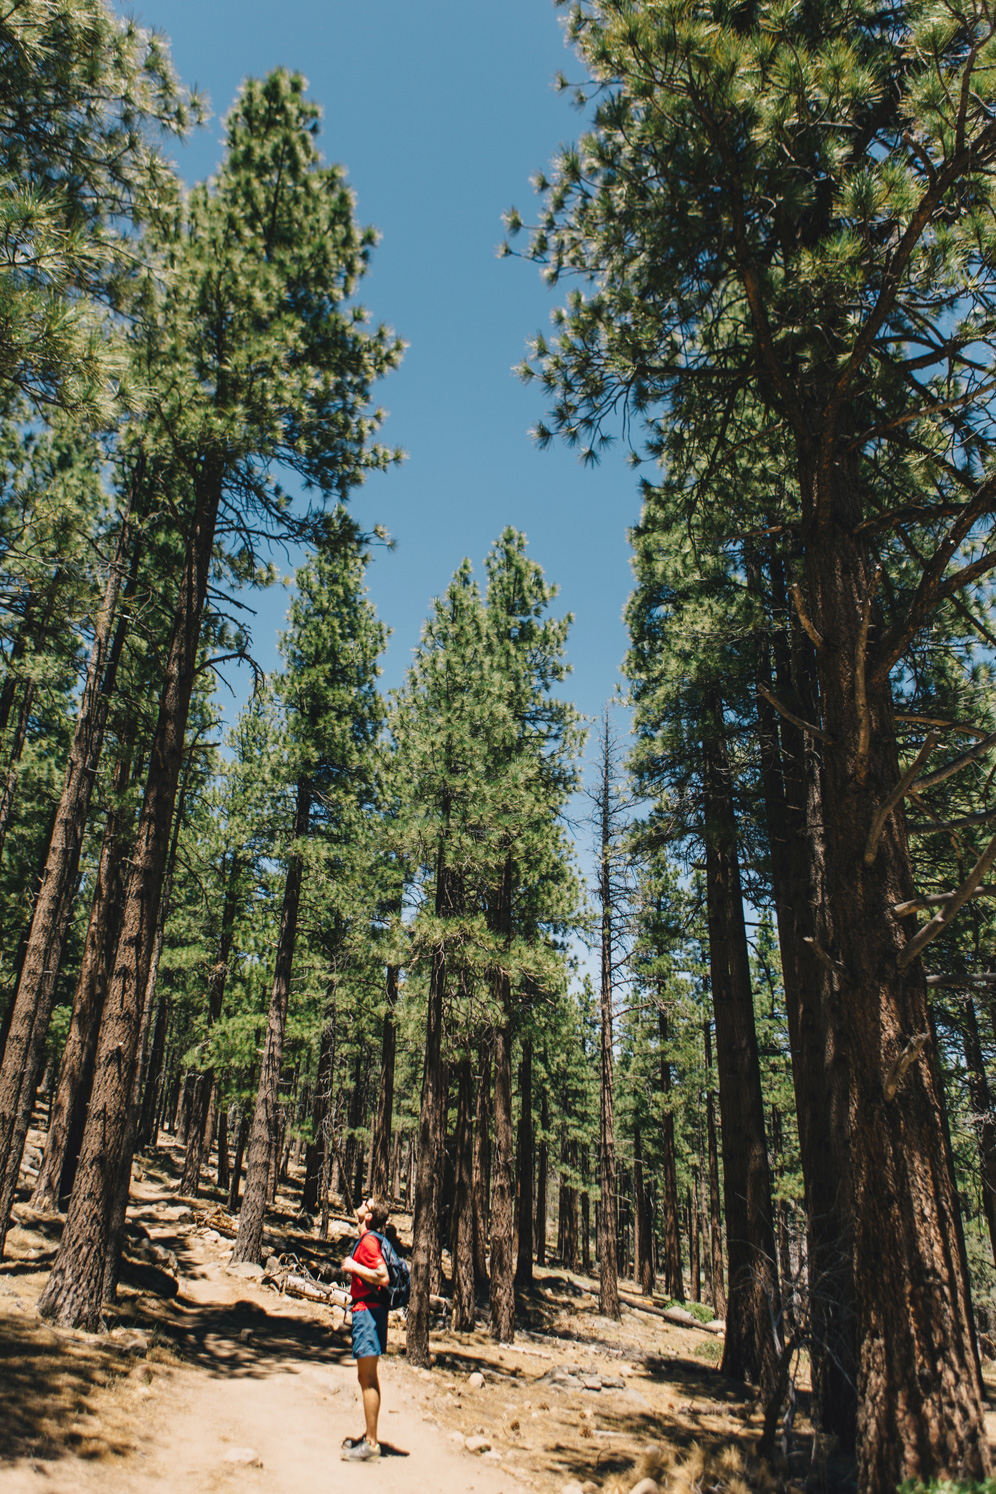 CindyGiovagnoli_Galena_Creek_Visitors_Center_hike_Reno_Tahoe_Nevada_outdoor_activities-009.jpg